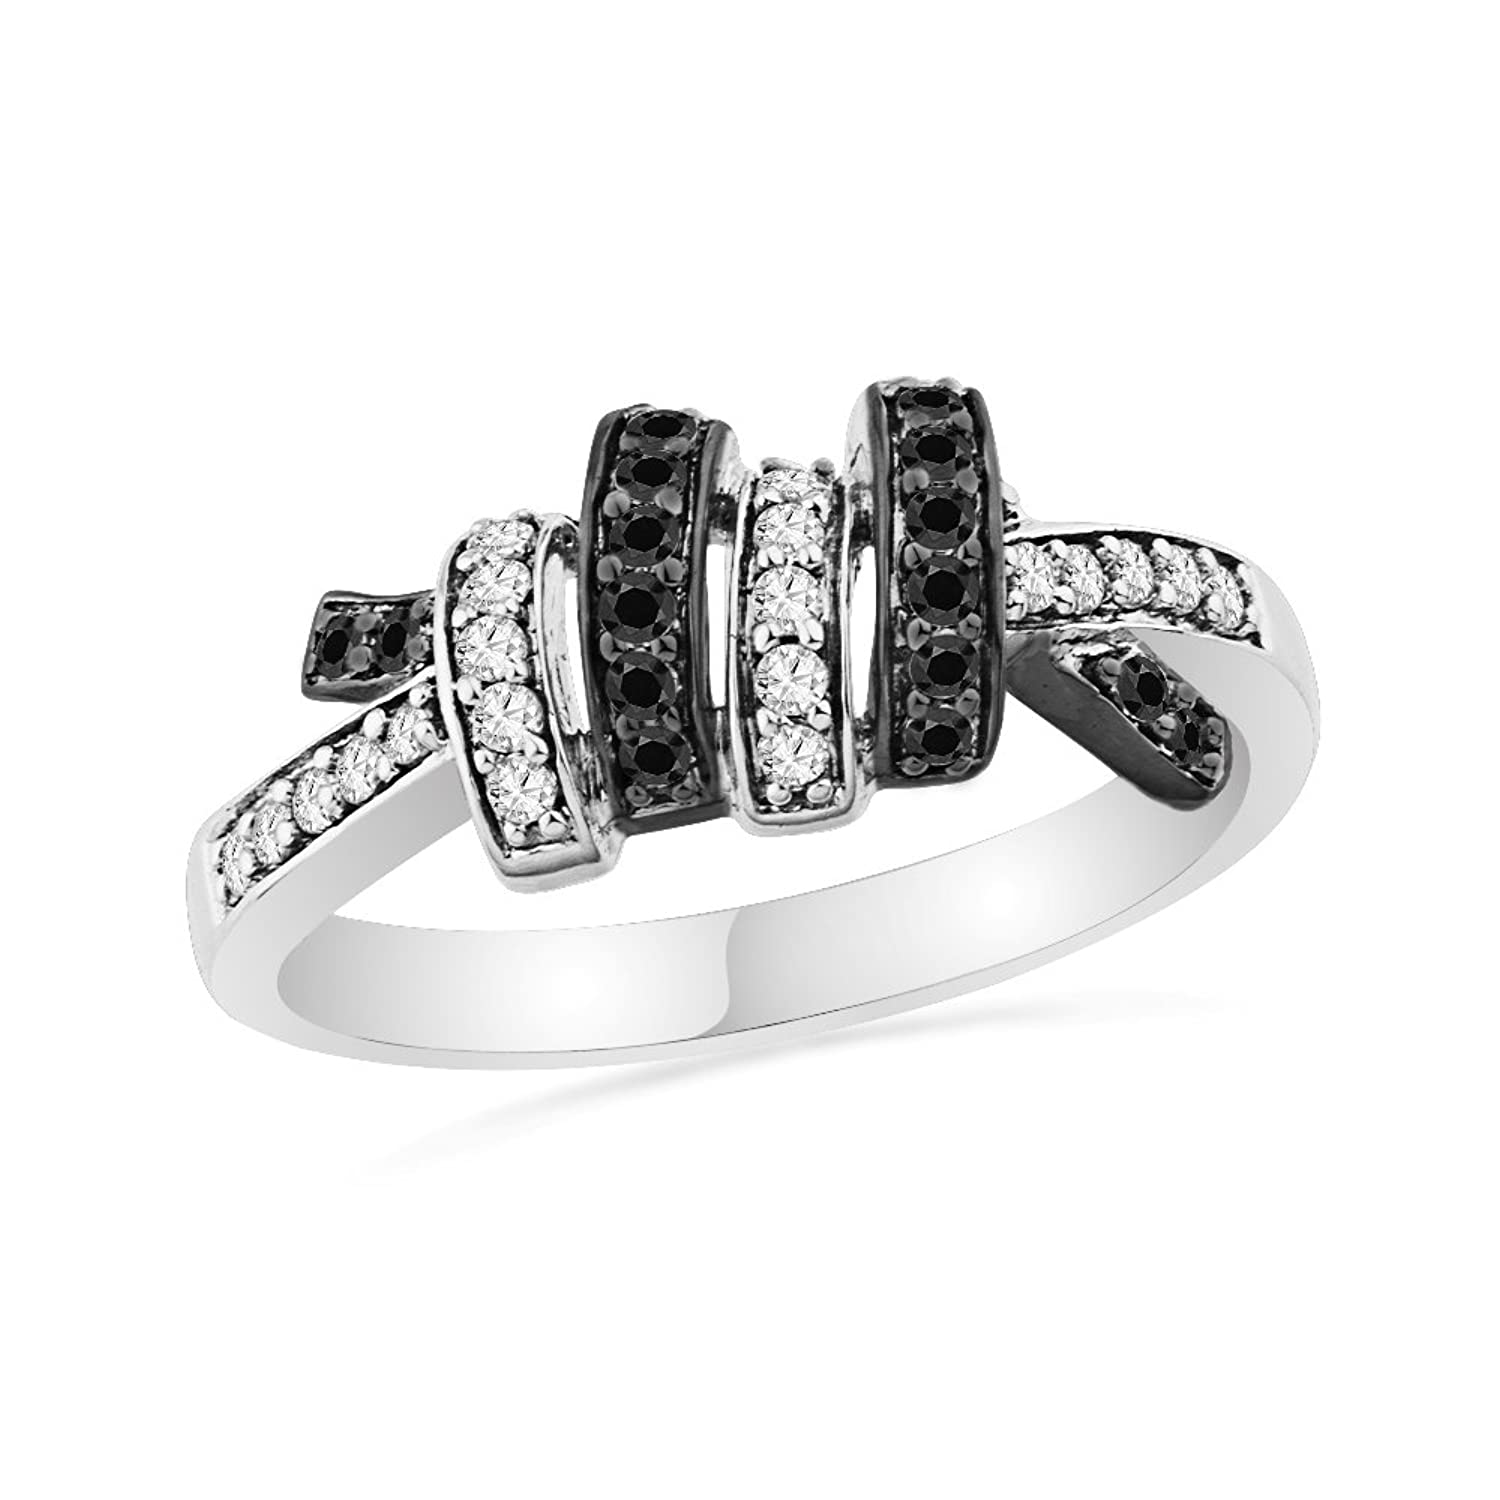 10KT White Gold Black And White Round Diamond Twisted Fashion Ring (1/5 cttw)